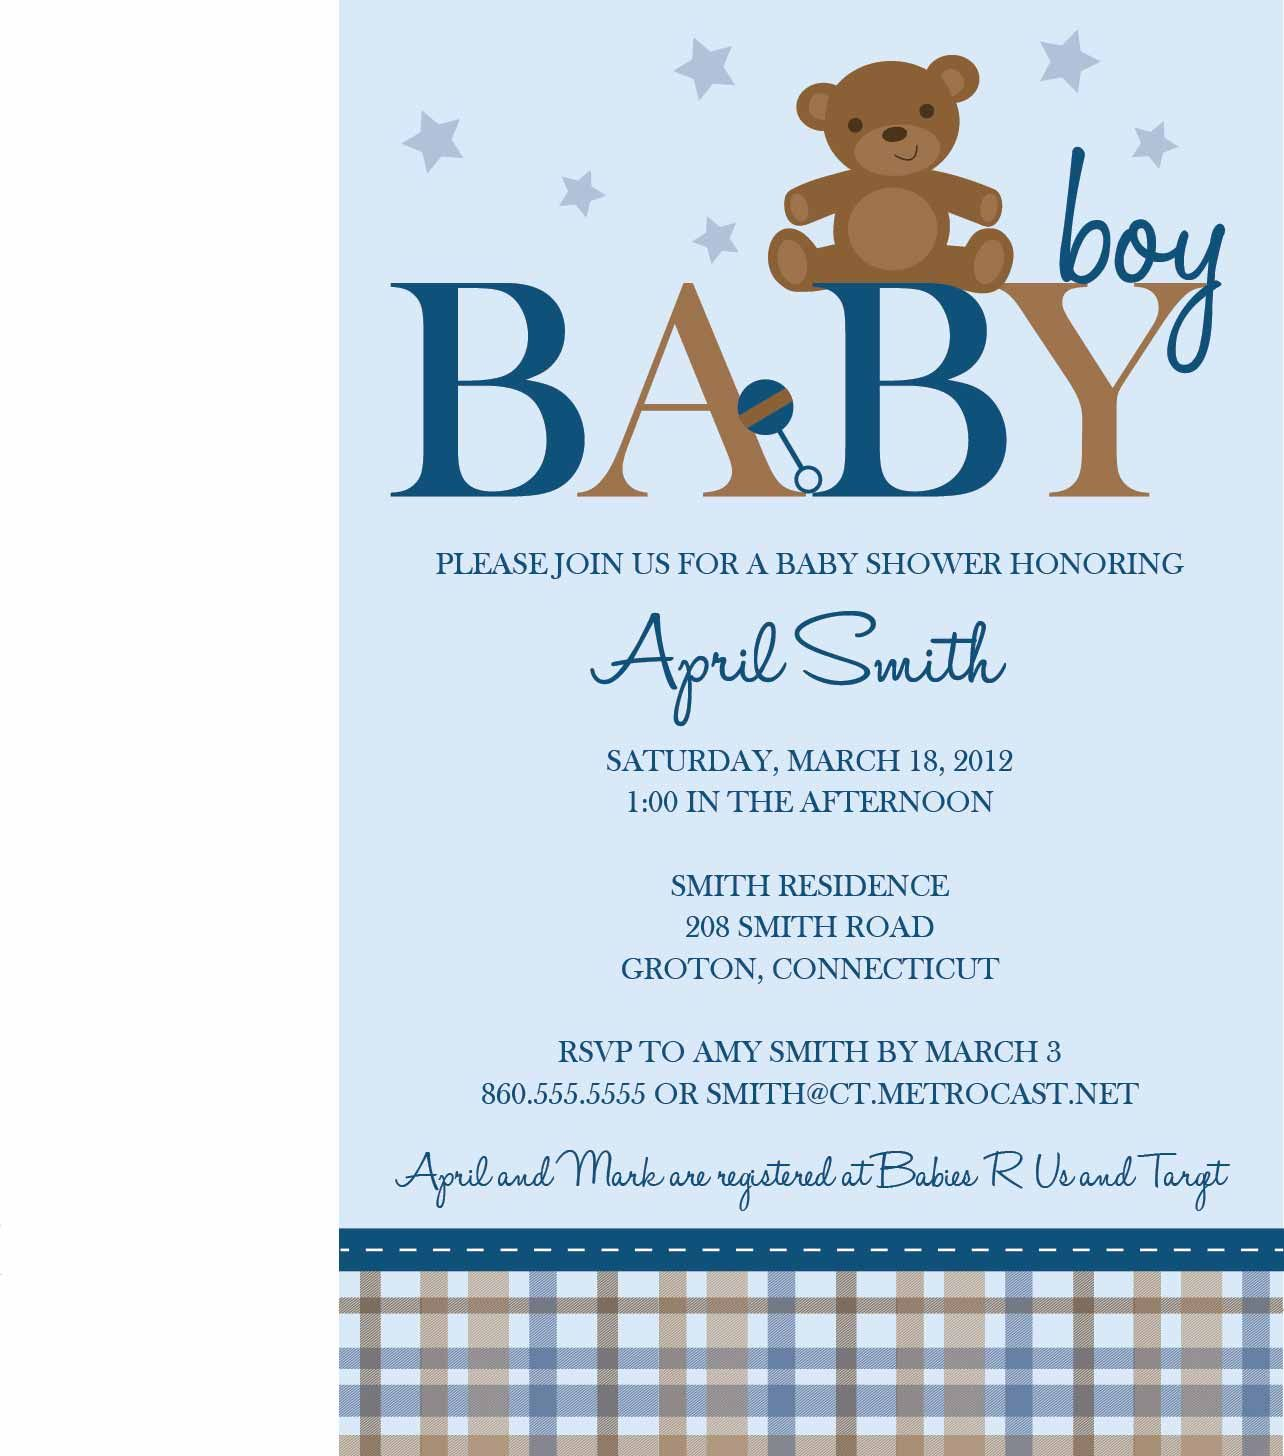 Teddy bear baby shower templates baby shower invitations for boys teddy bear baby shower templates baby shower invitations for boys template filmwisefo Choice Image